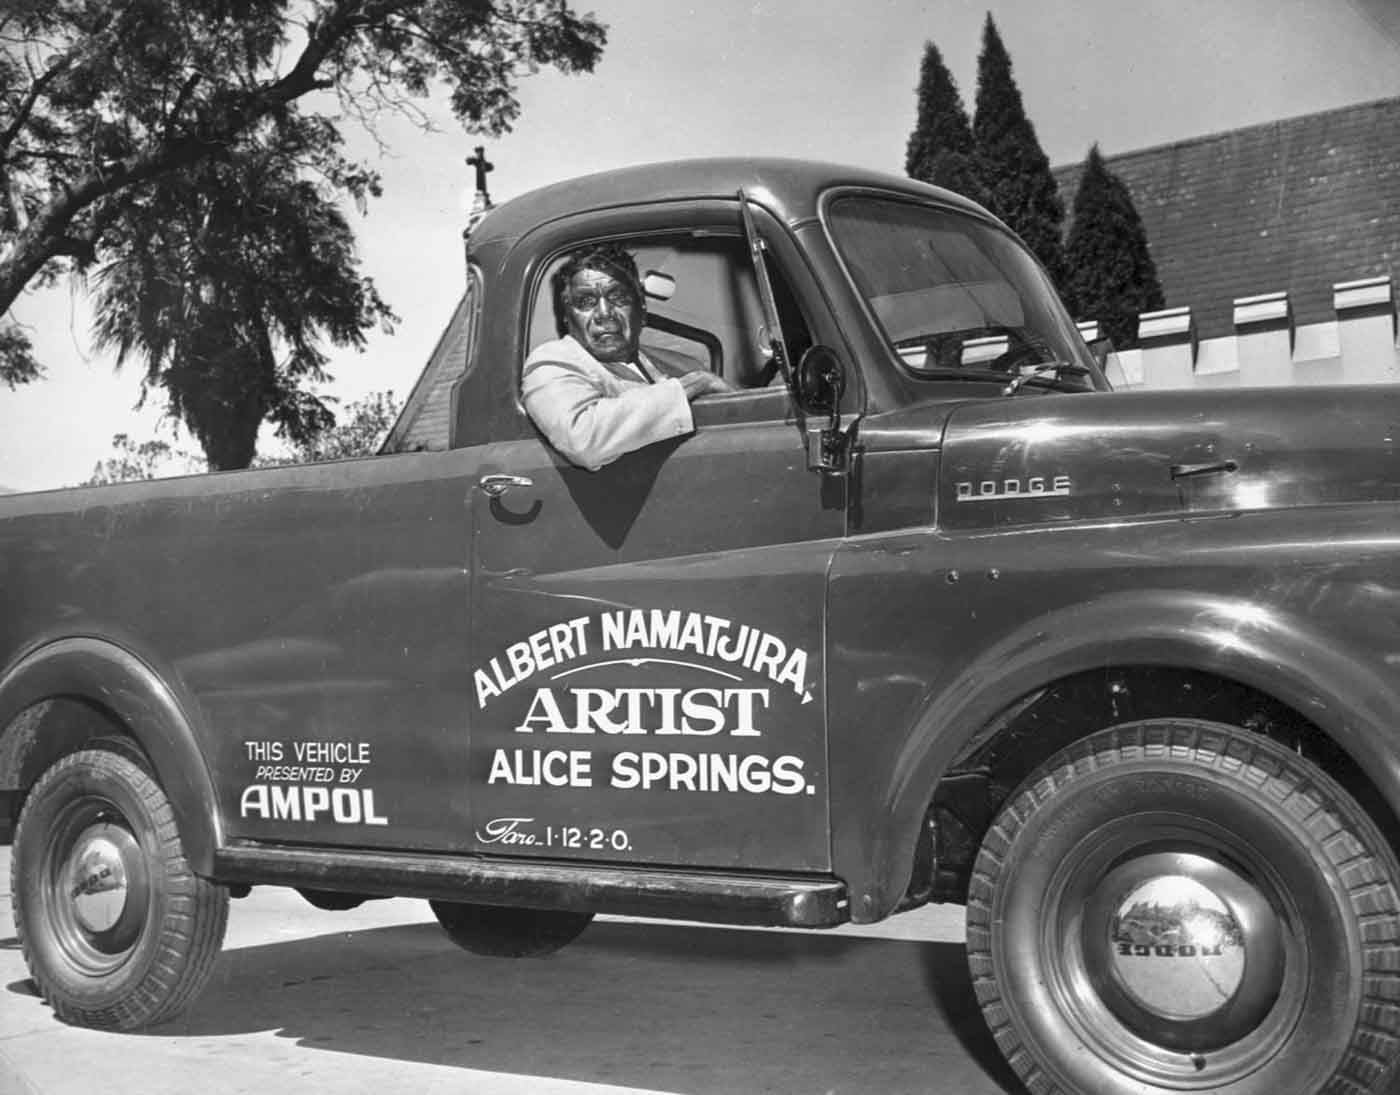 Black and white photo of an Aboriginal man sitting in a truck with 'ALBERT NAMATJIRA ARTIST ALICE SPRINGS' printed on the outside. - click to view larger image